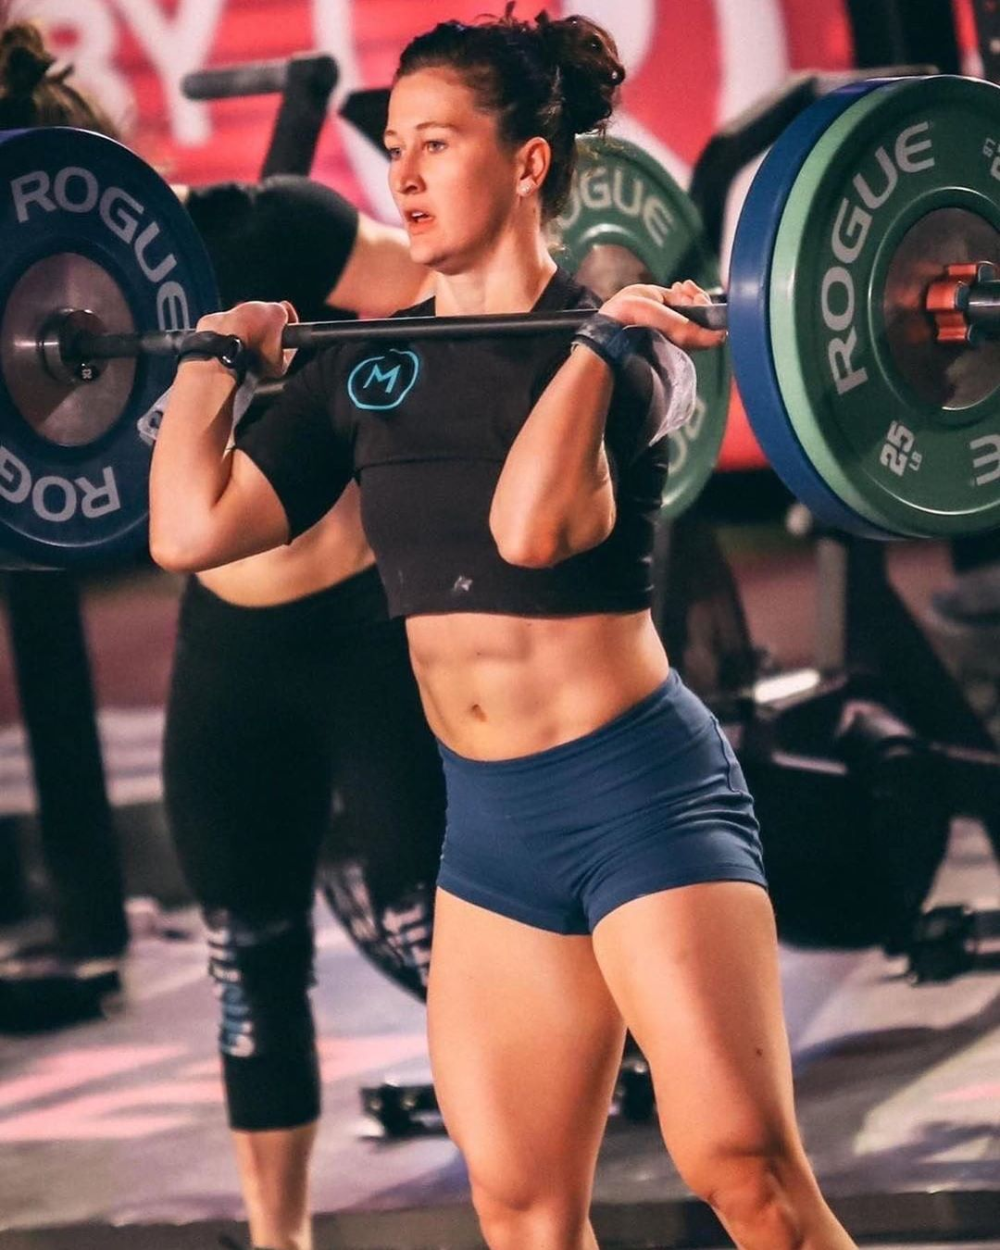 Tia Clair Toomey On Instagram Are You Curious To See What I Eat With My Themethodnow Coach Female Crossfit Athletes Fitness Models Female Crossfit Girl